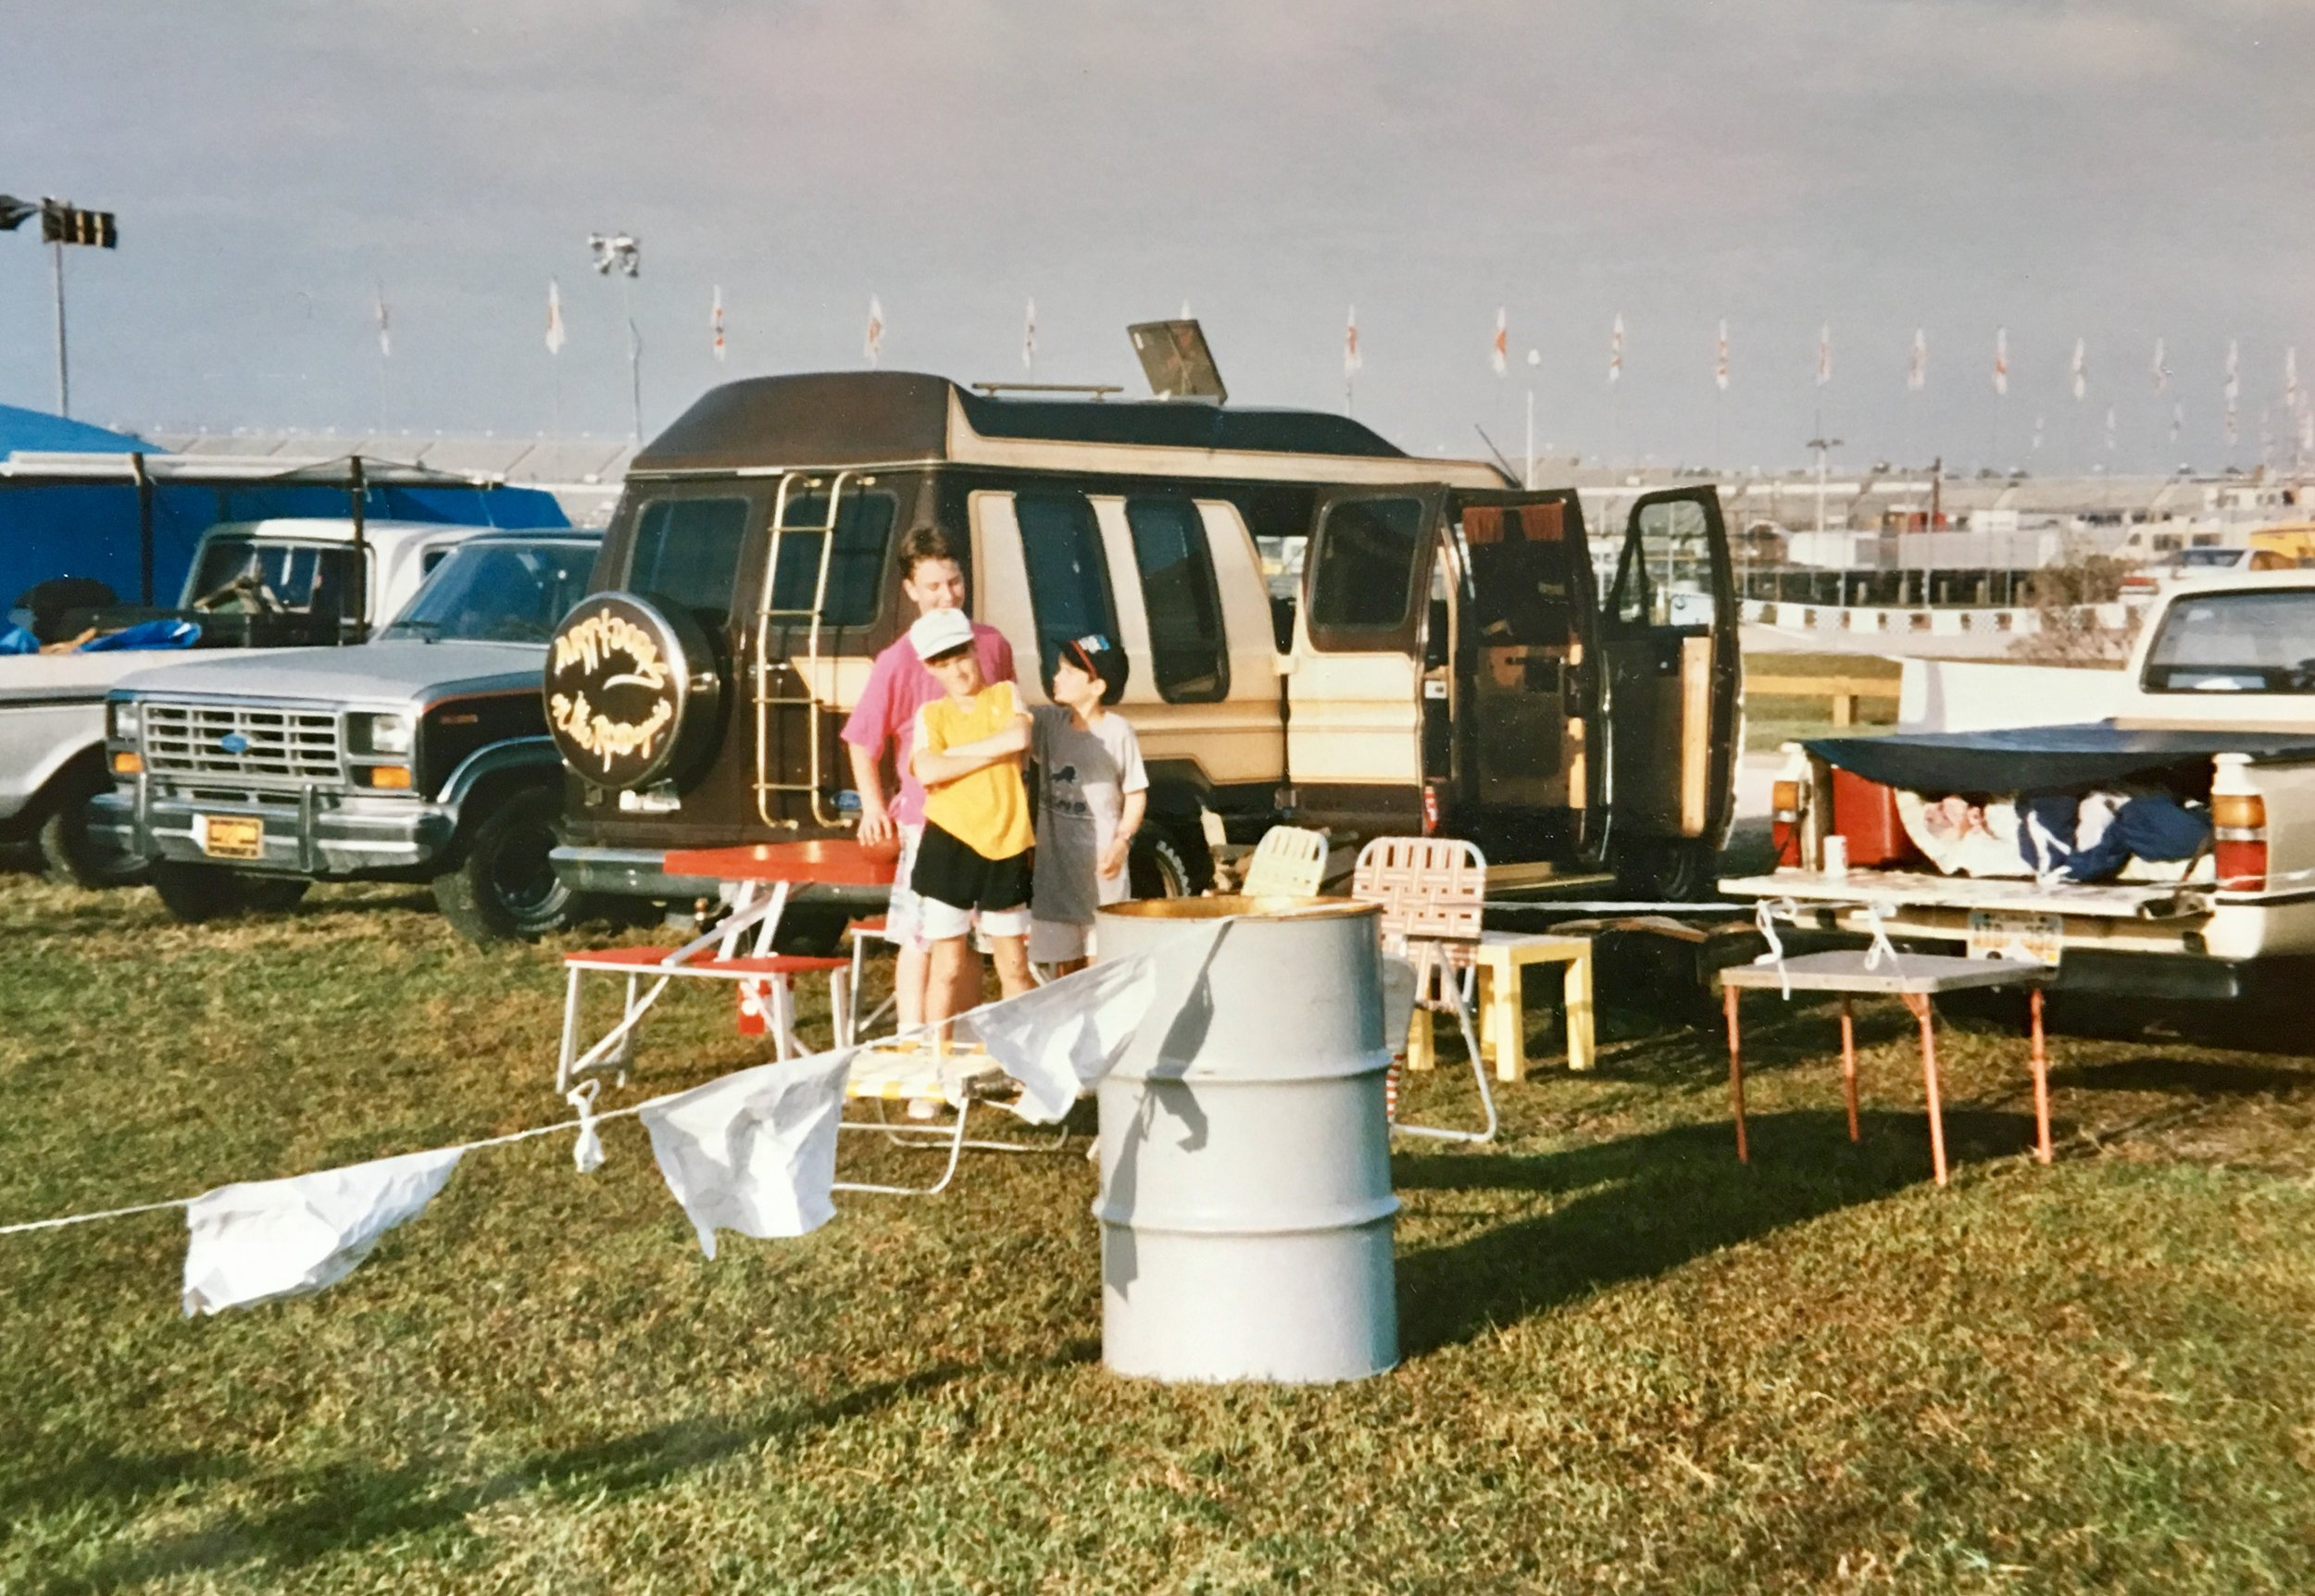 Me, Chris, and Eric at the Rolex 24 at Daytona around 1989